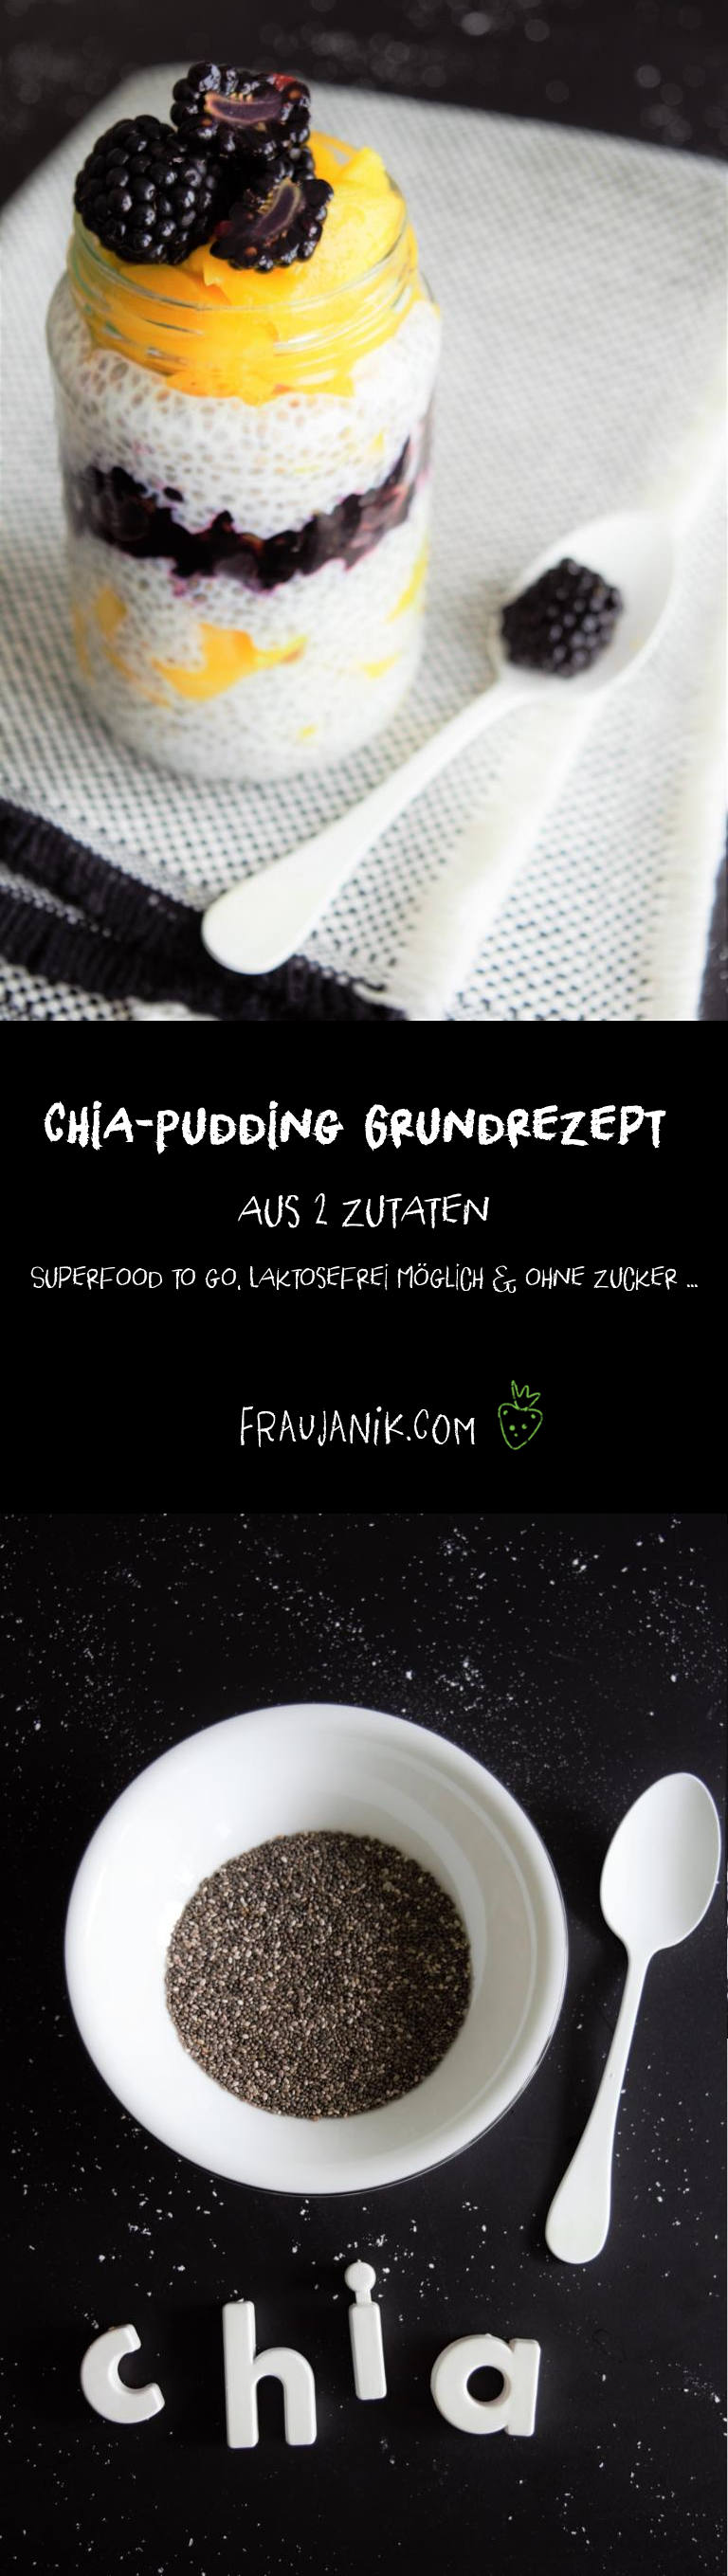 Chia-Pudding Grundrezept, vegan